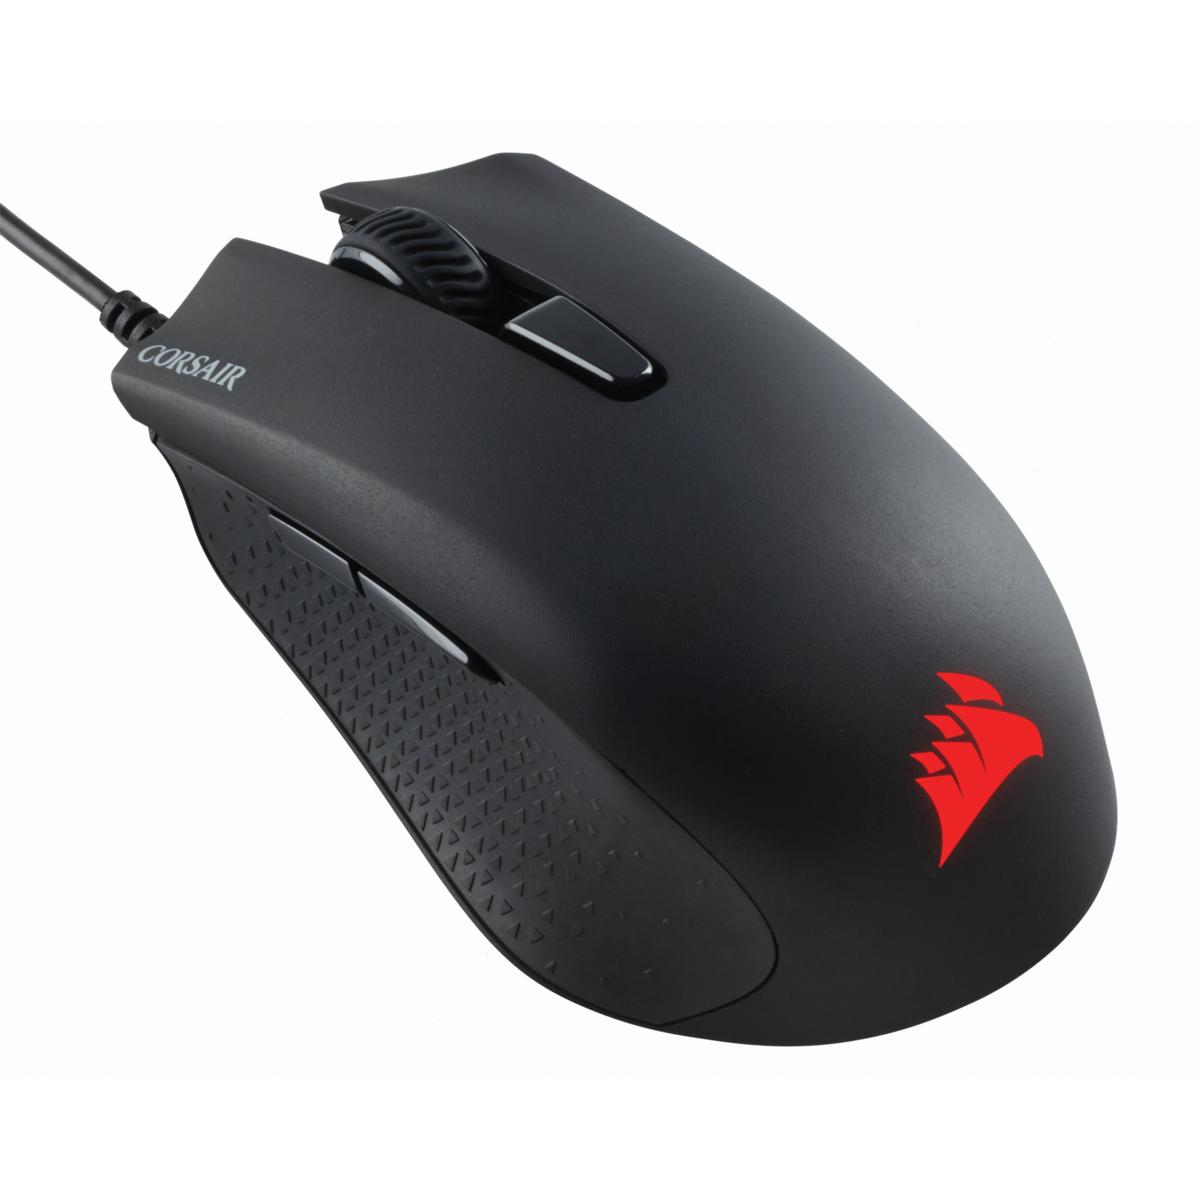 Corsair HARPOON RGB PRO Wired Optical Mouse